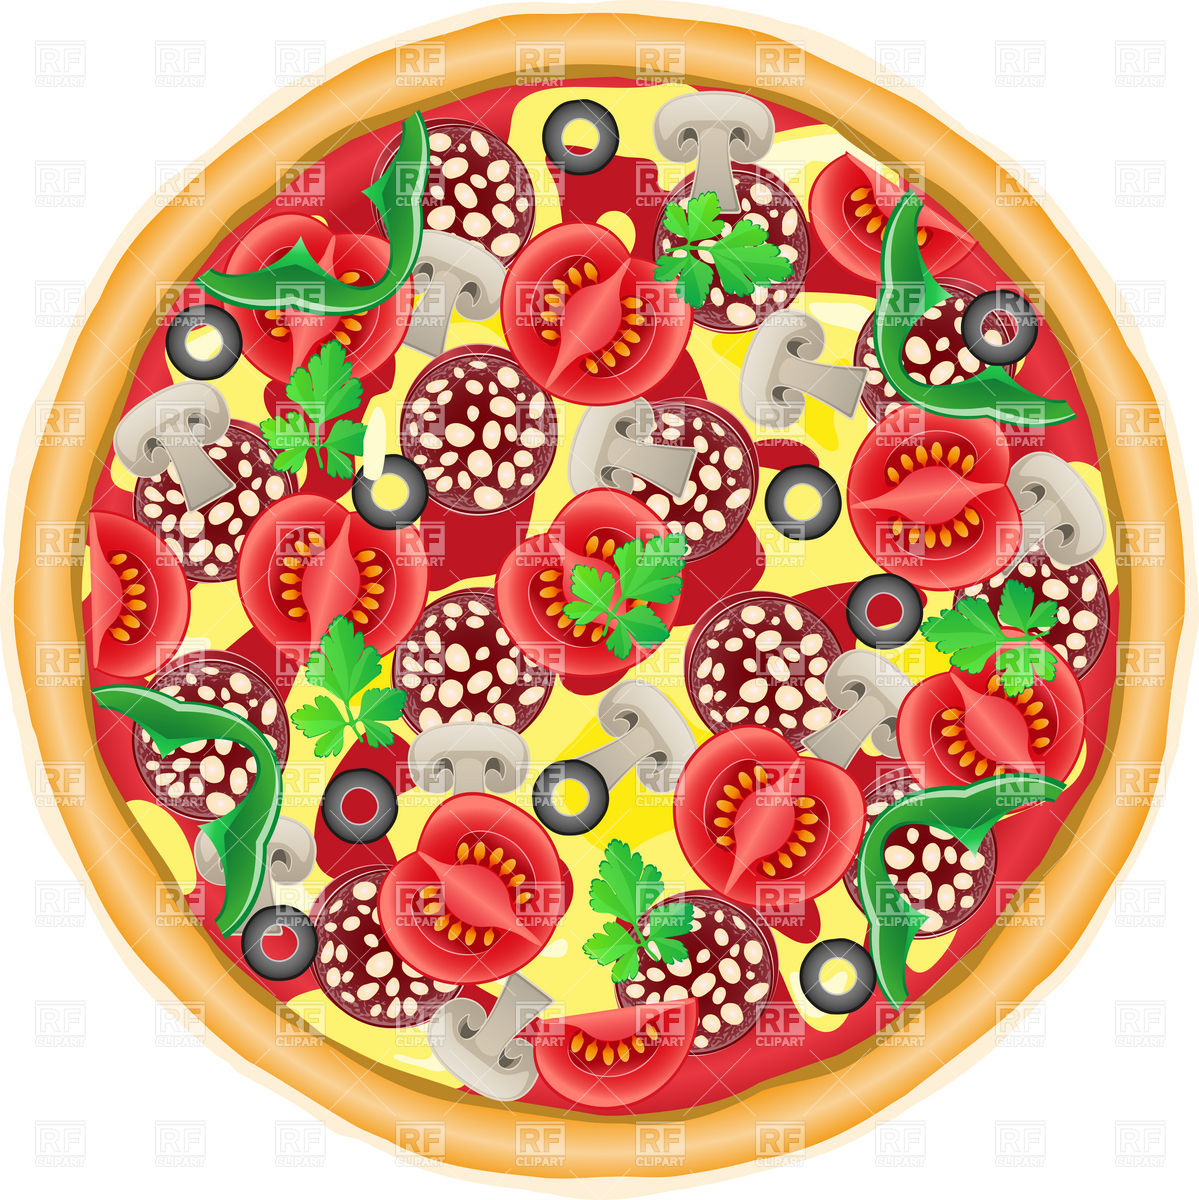 Whole Pie Top View Clipart.